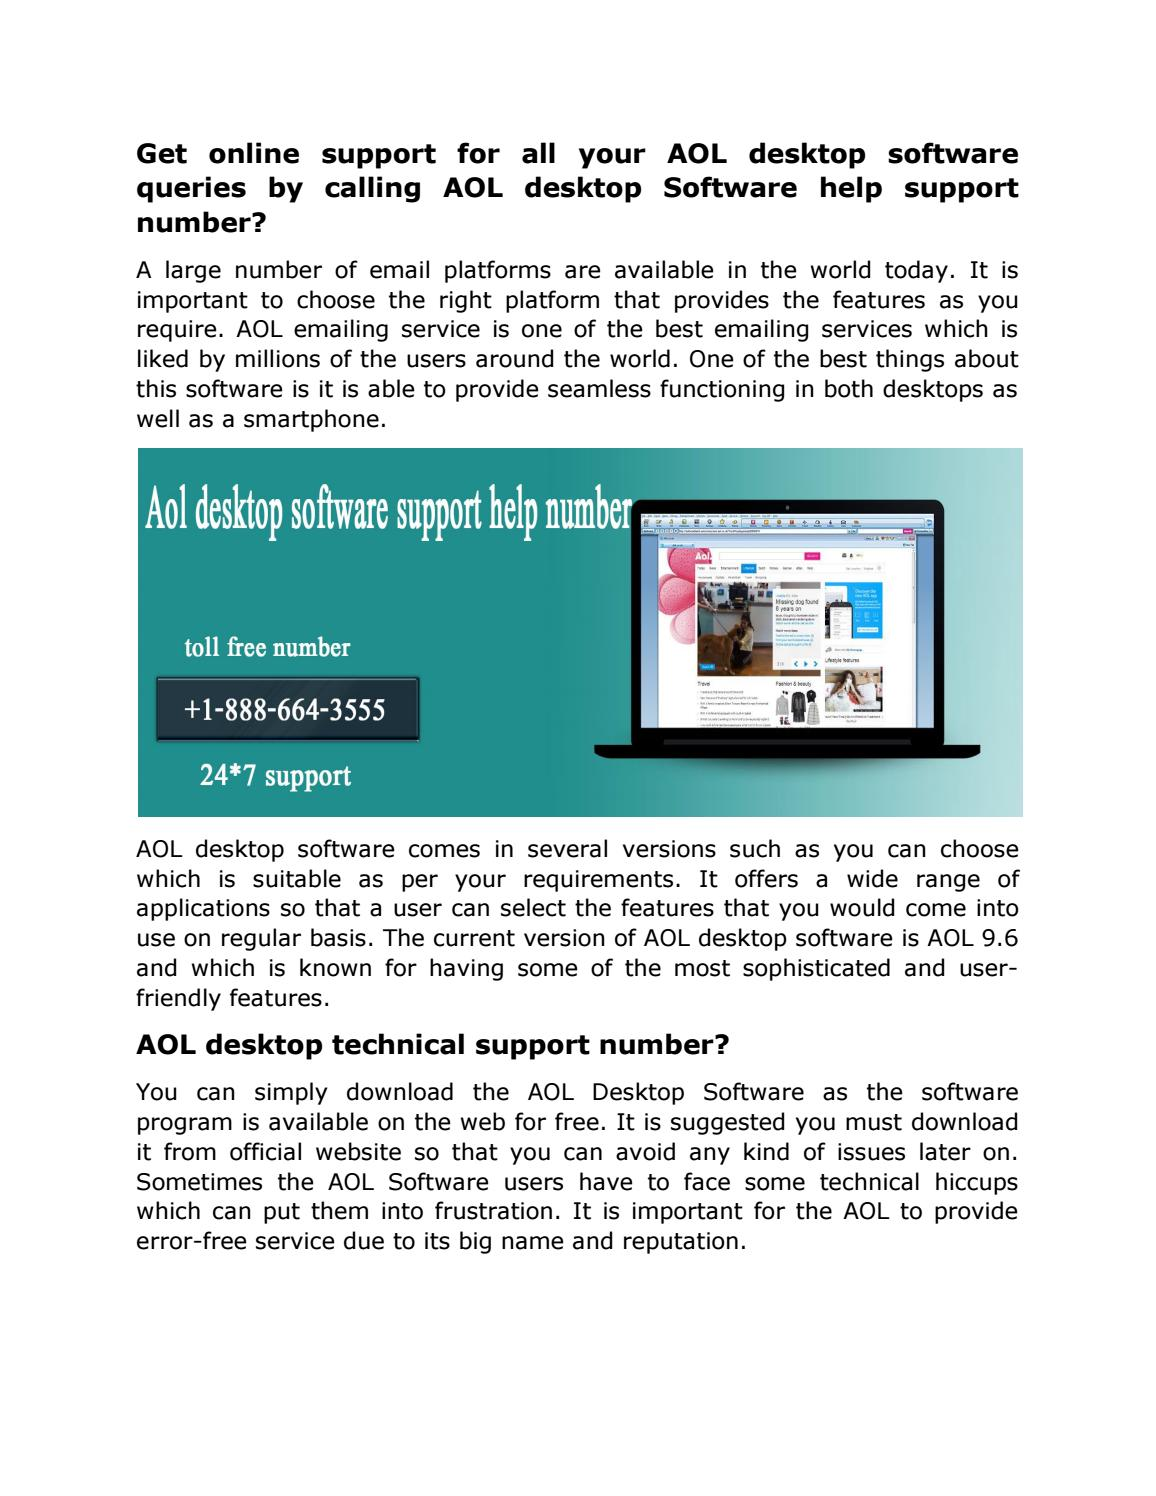 aol desktop software help support number 1 888 664 3555 by